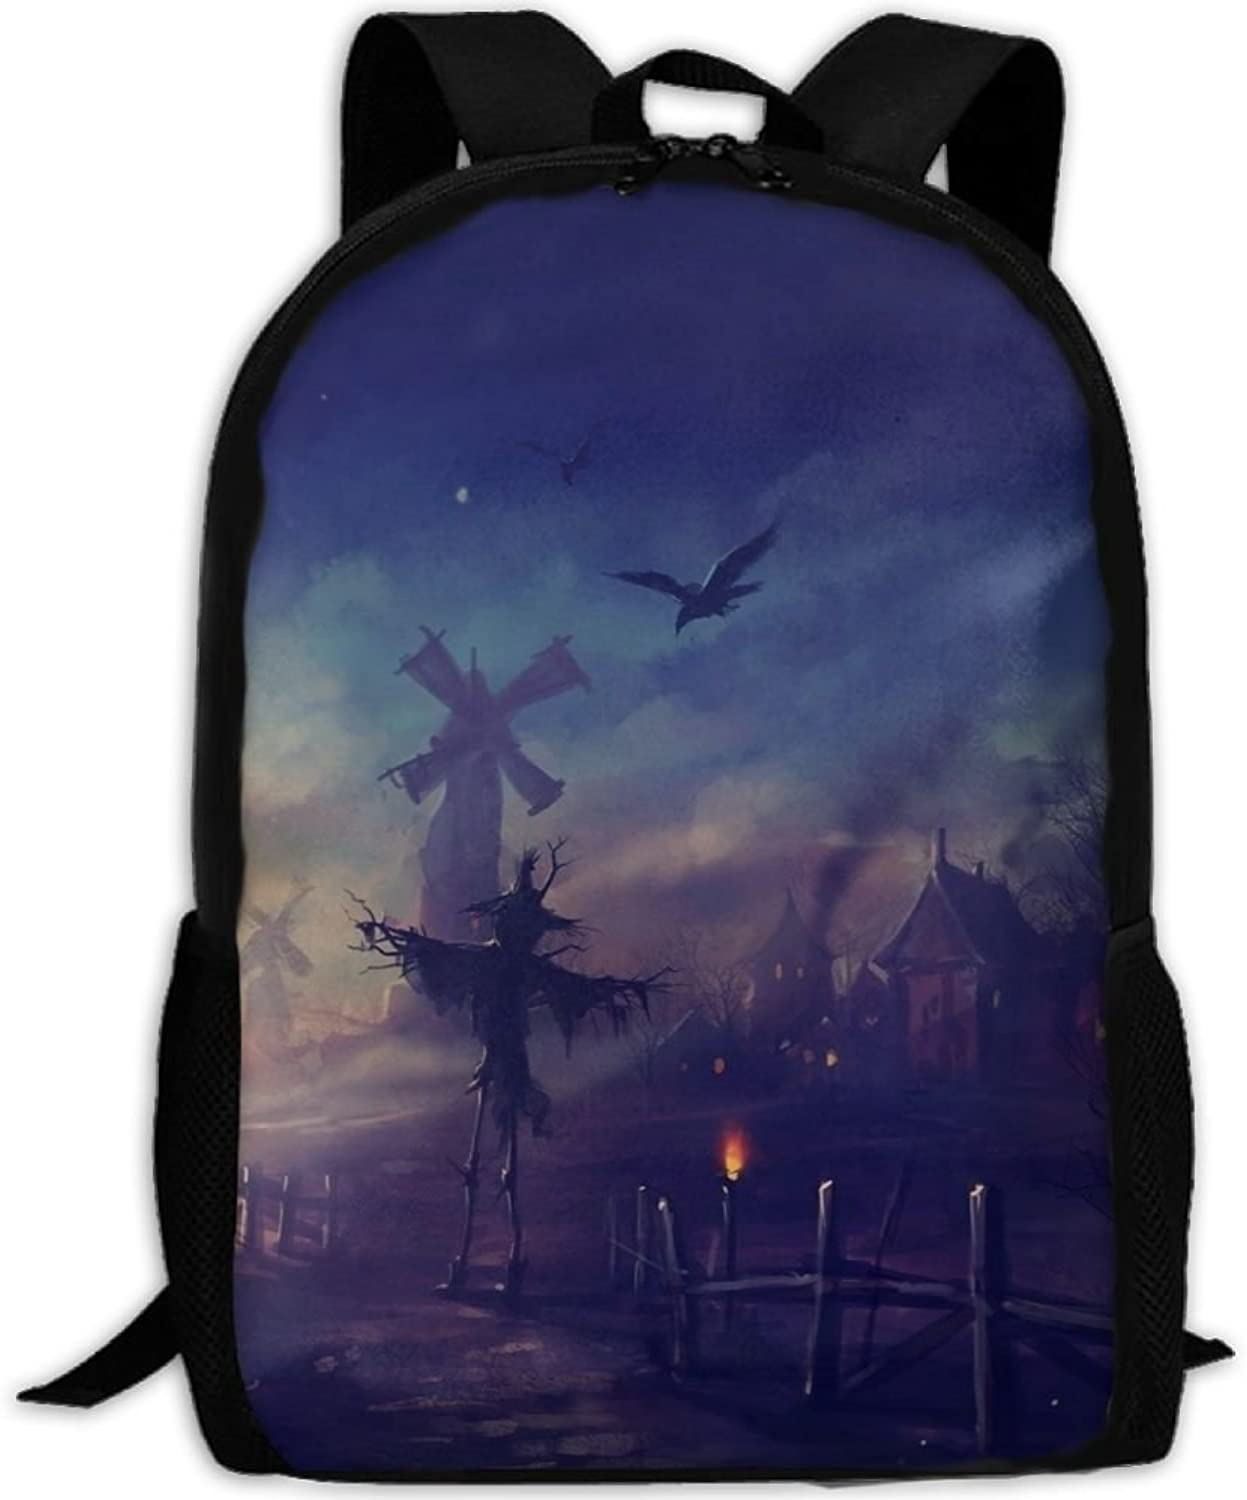 b99b3376c7d6 Backpack Laptop Hiking School Bags Scary Happy Halloween Shoulder ...